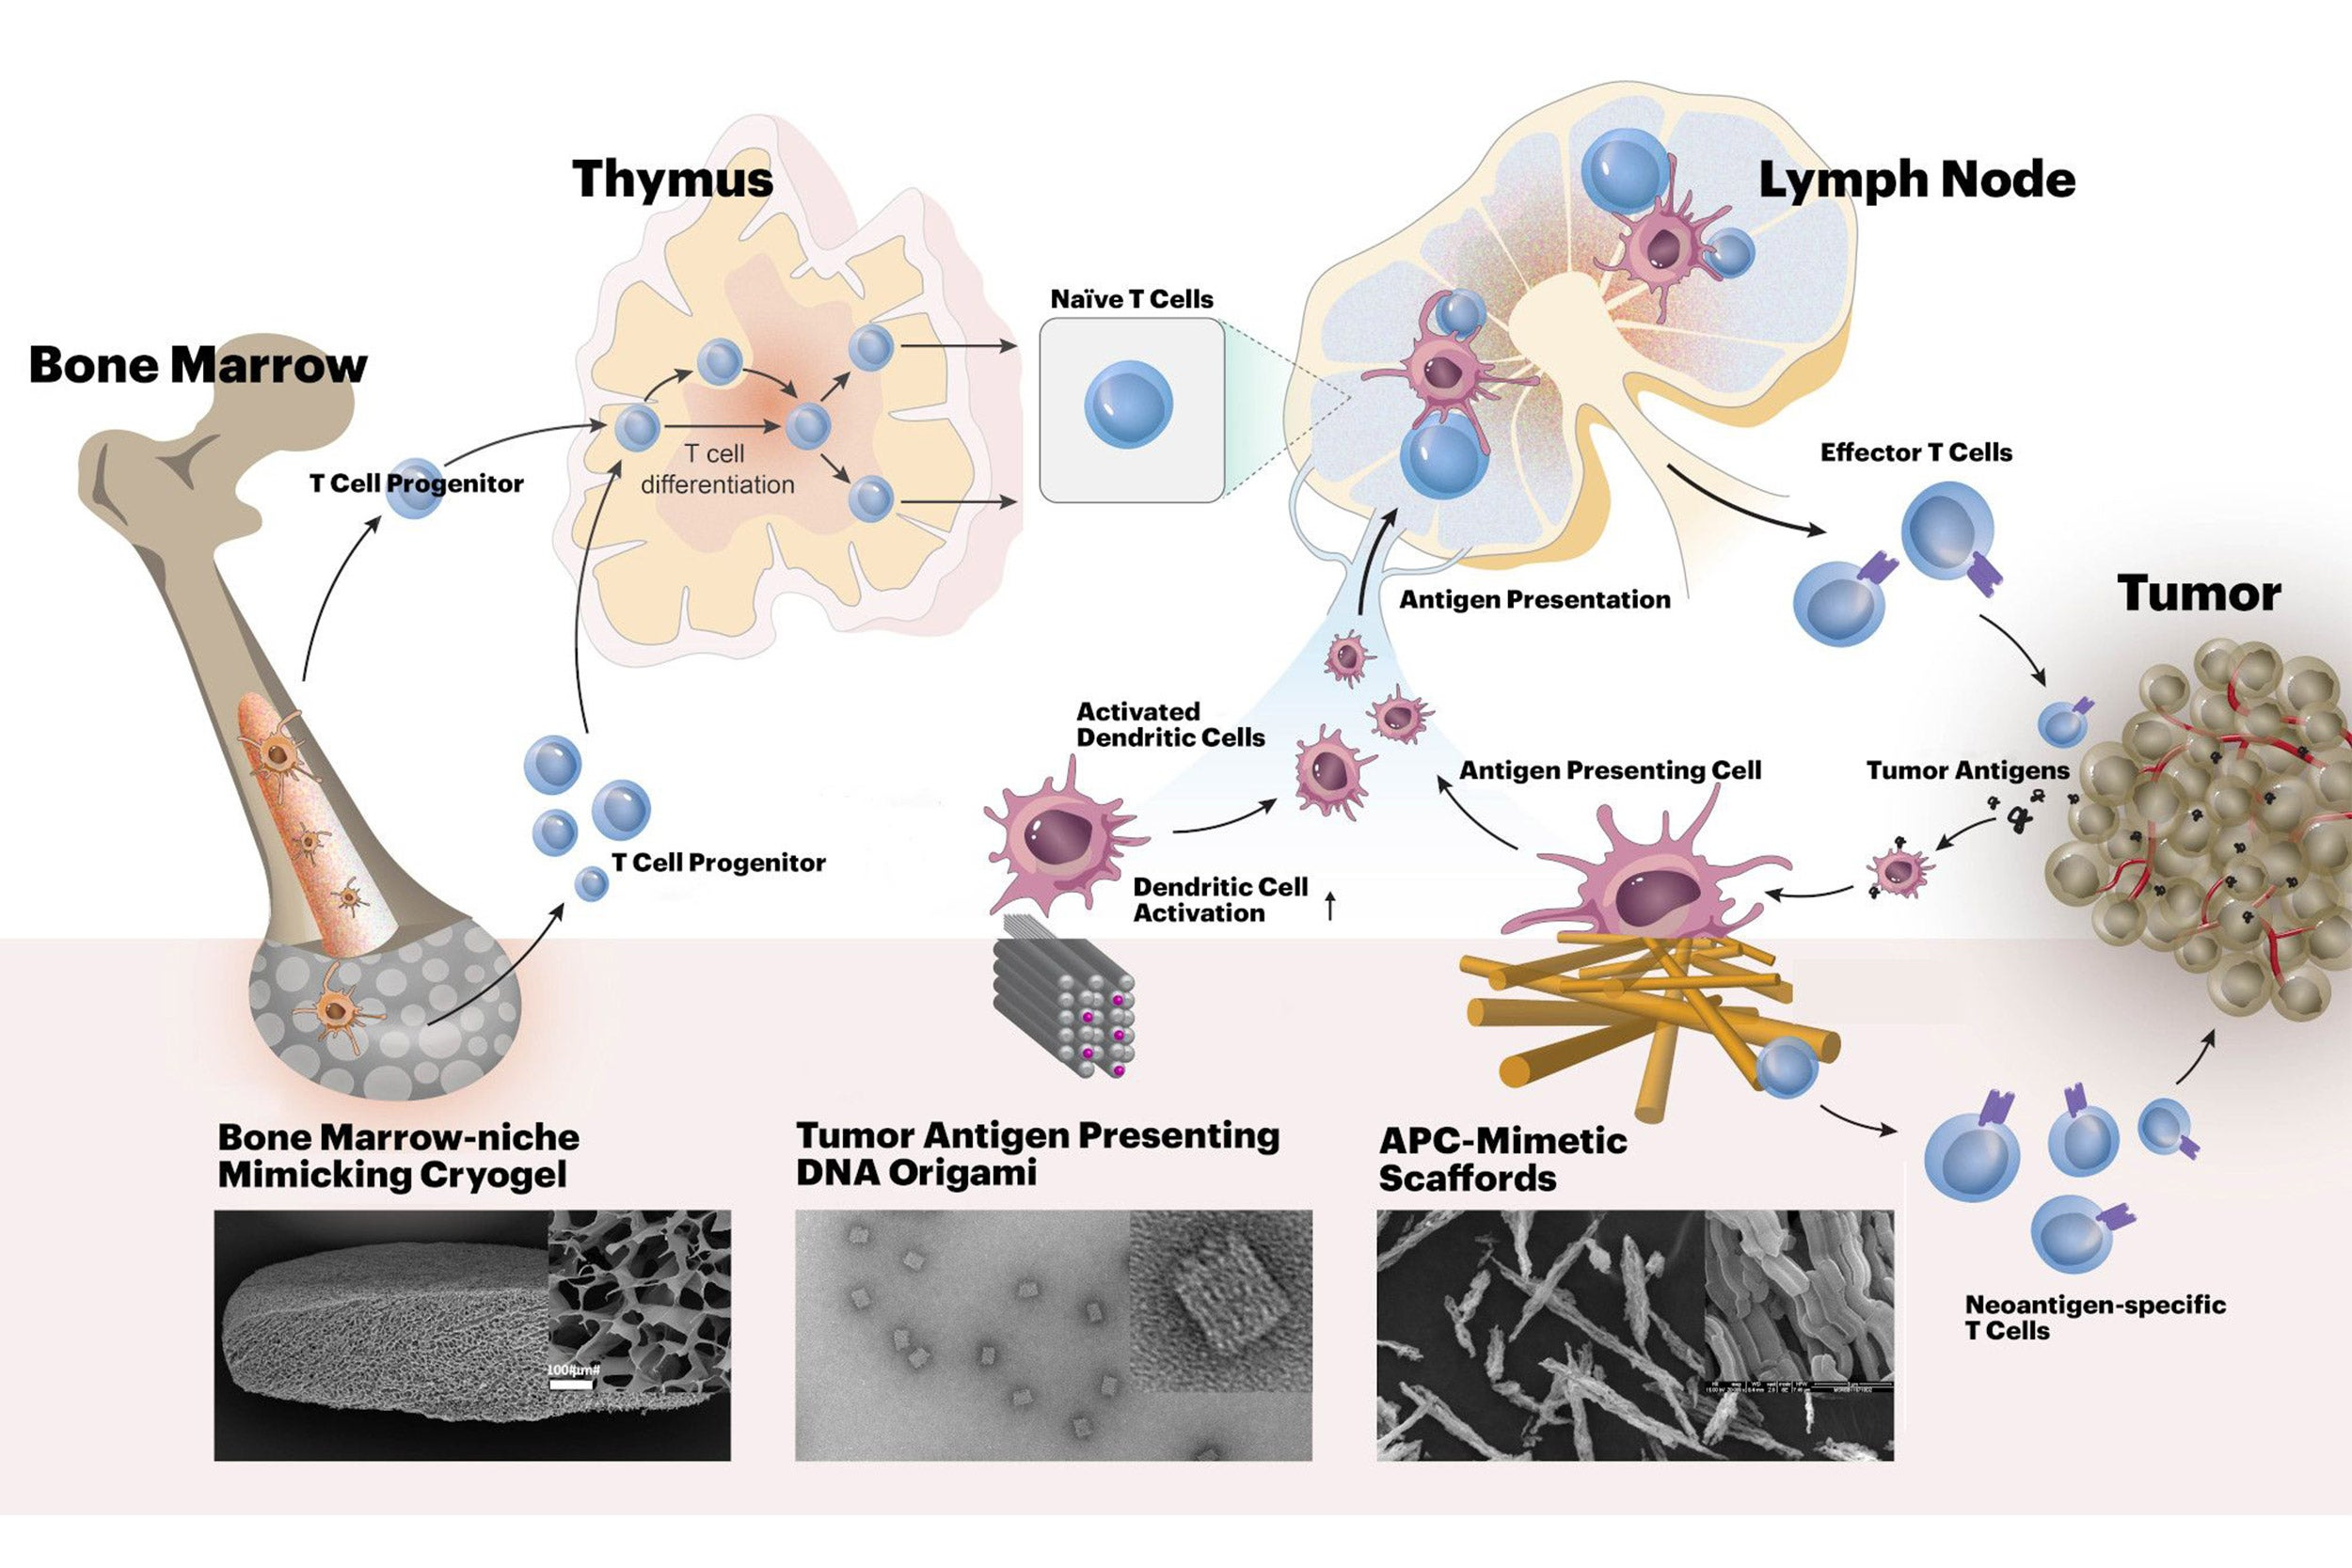 Harvard's i3 Center will develop new biomaterials-based approaches for cancer immunotherapy. The materials will enhance tumor-specific activities of cytotoxic T cells, acting at different stages of their development.